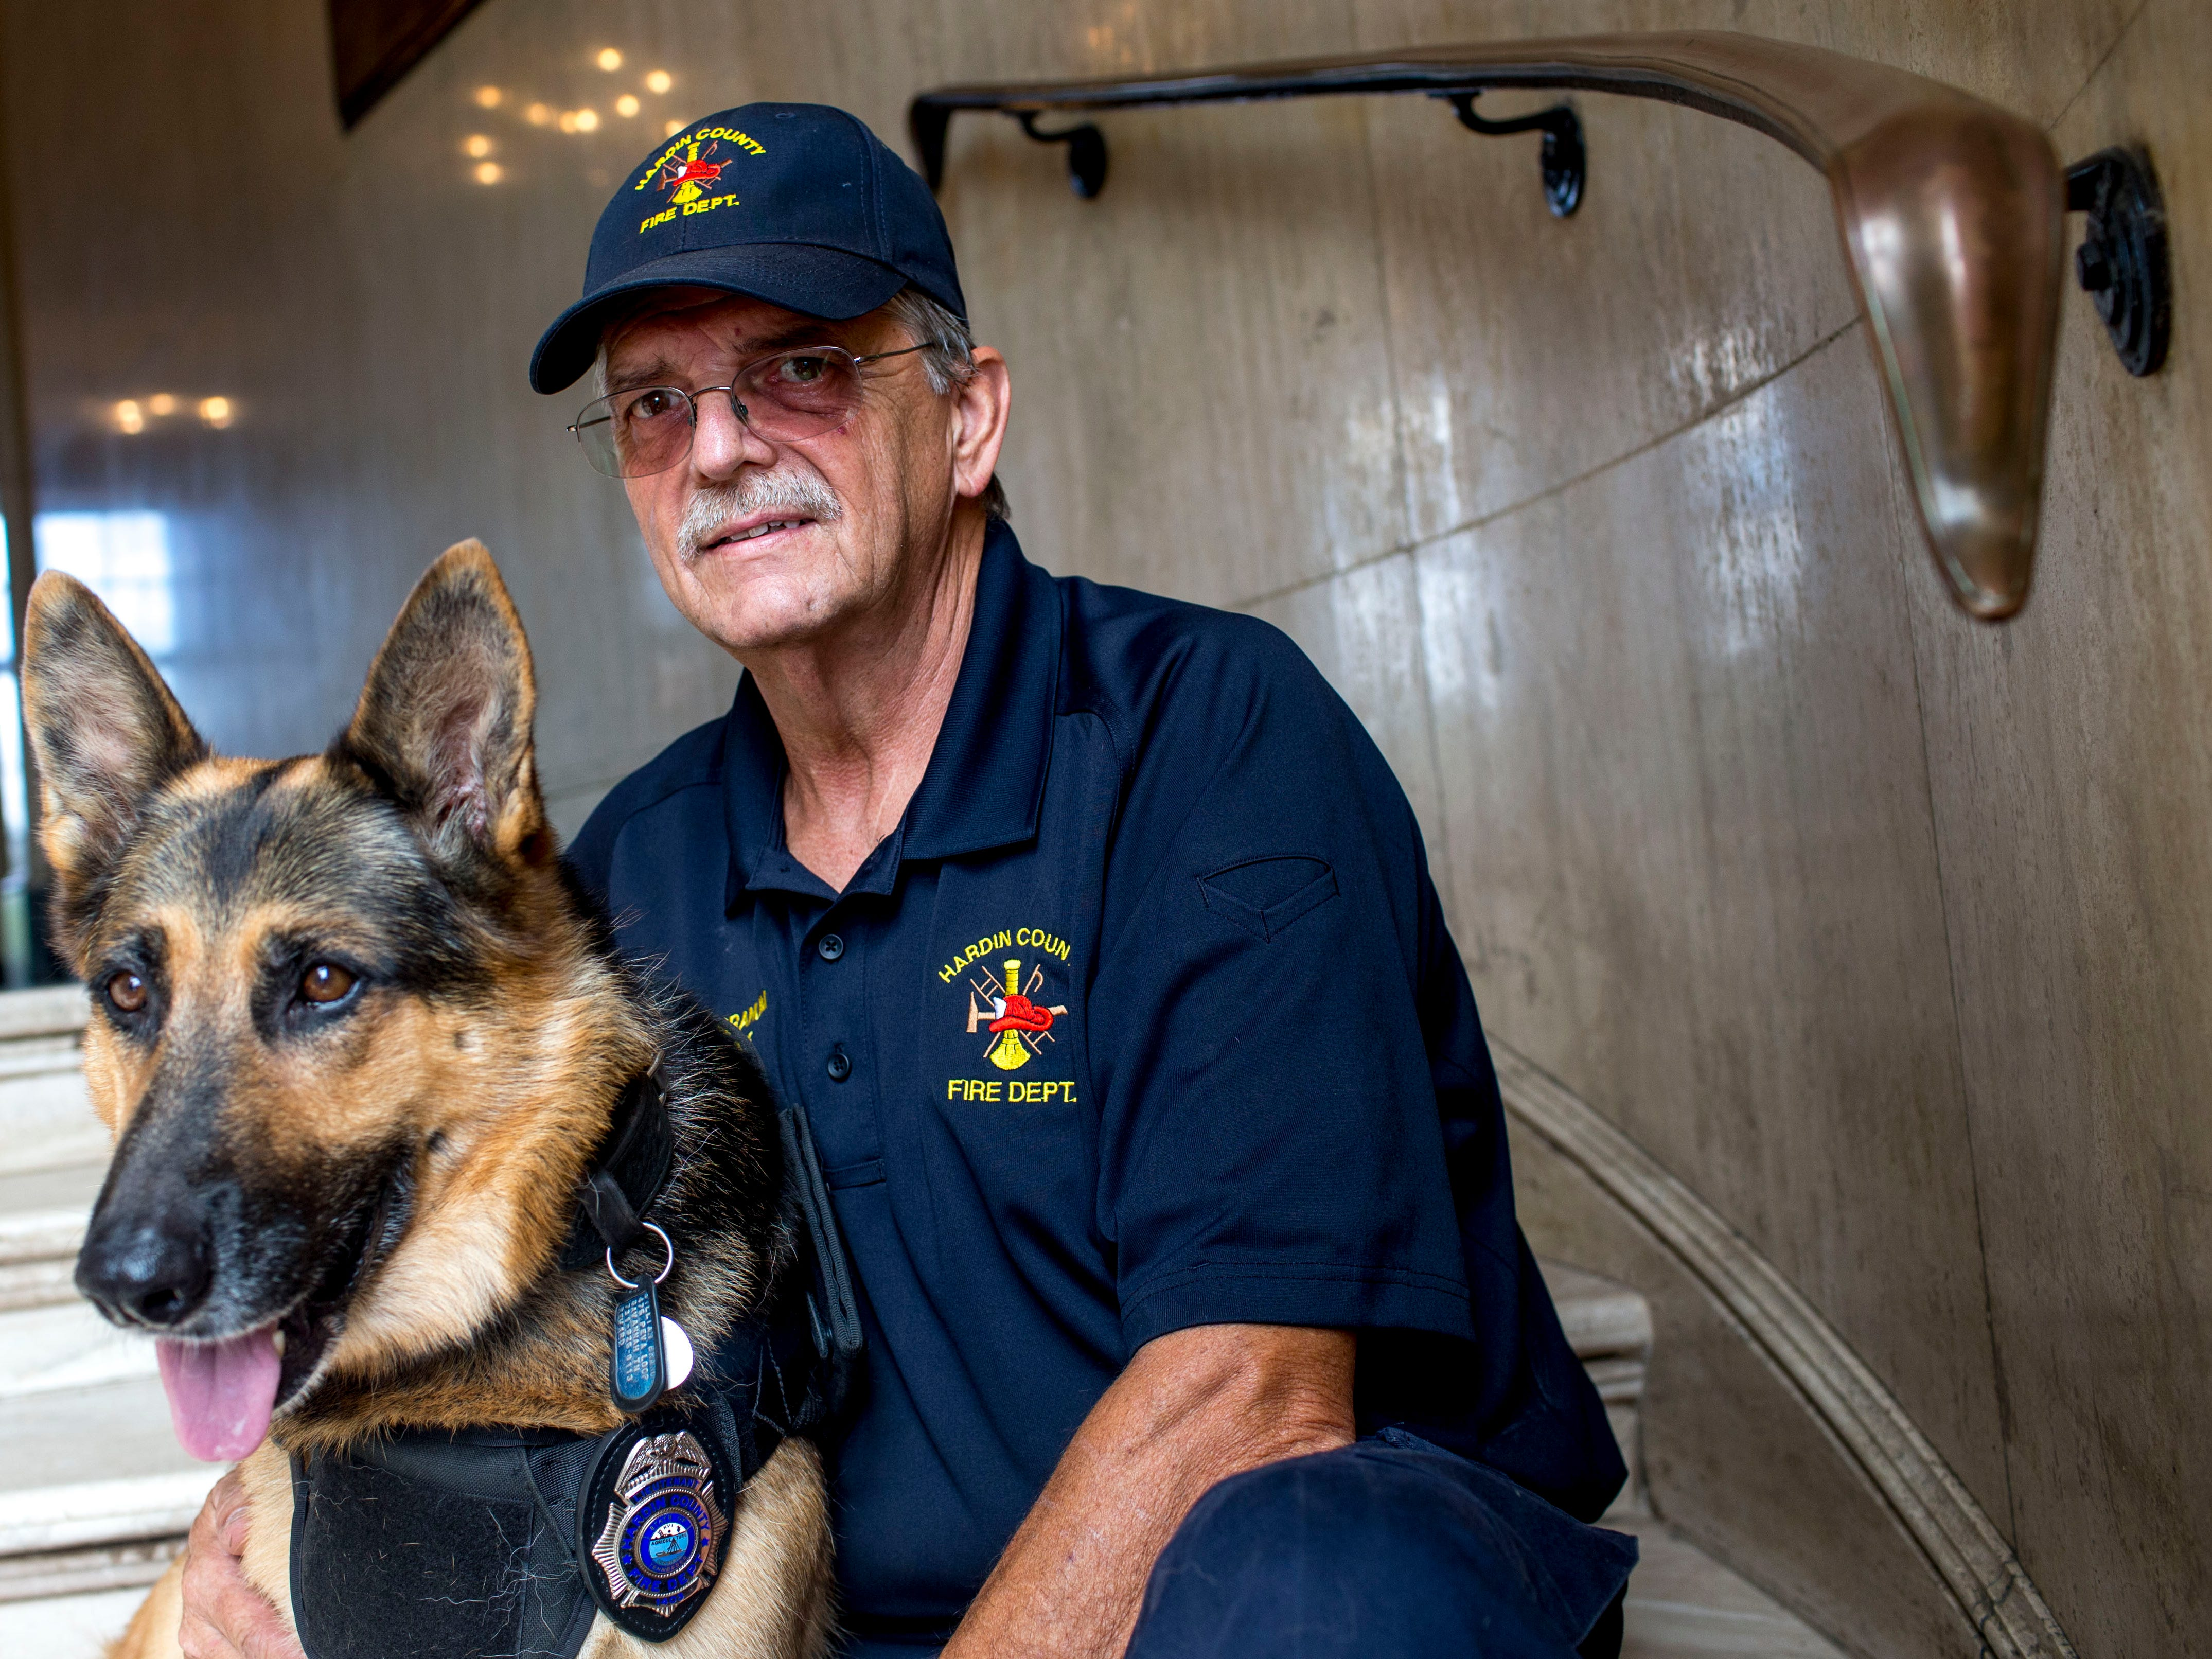 William Branum, the Hardin County fire district 14 chief, right, and his partner Jodi-Le, a German shepherd, are both cancer survivors and made it through their ordeals while working with one another for the County, sit on the steps at Hardin County Circuit Court in Savannah, Tenn., on Monday, Sept. 17, 2018.